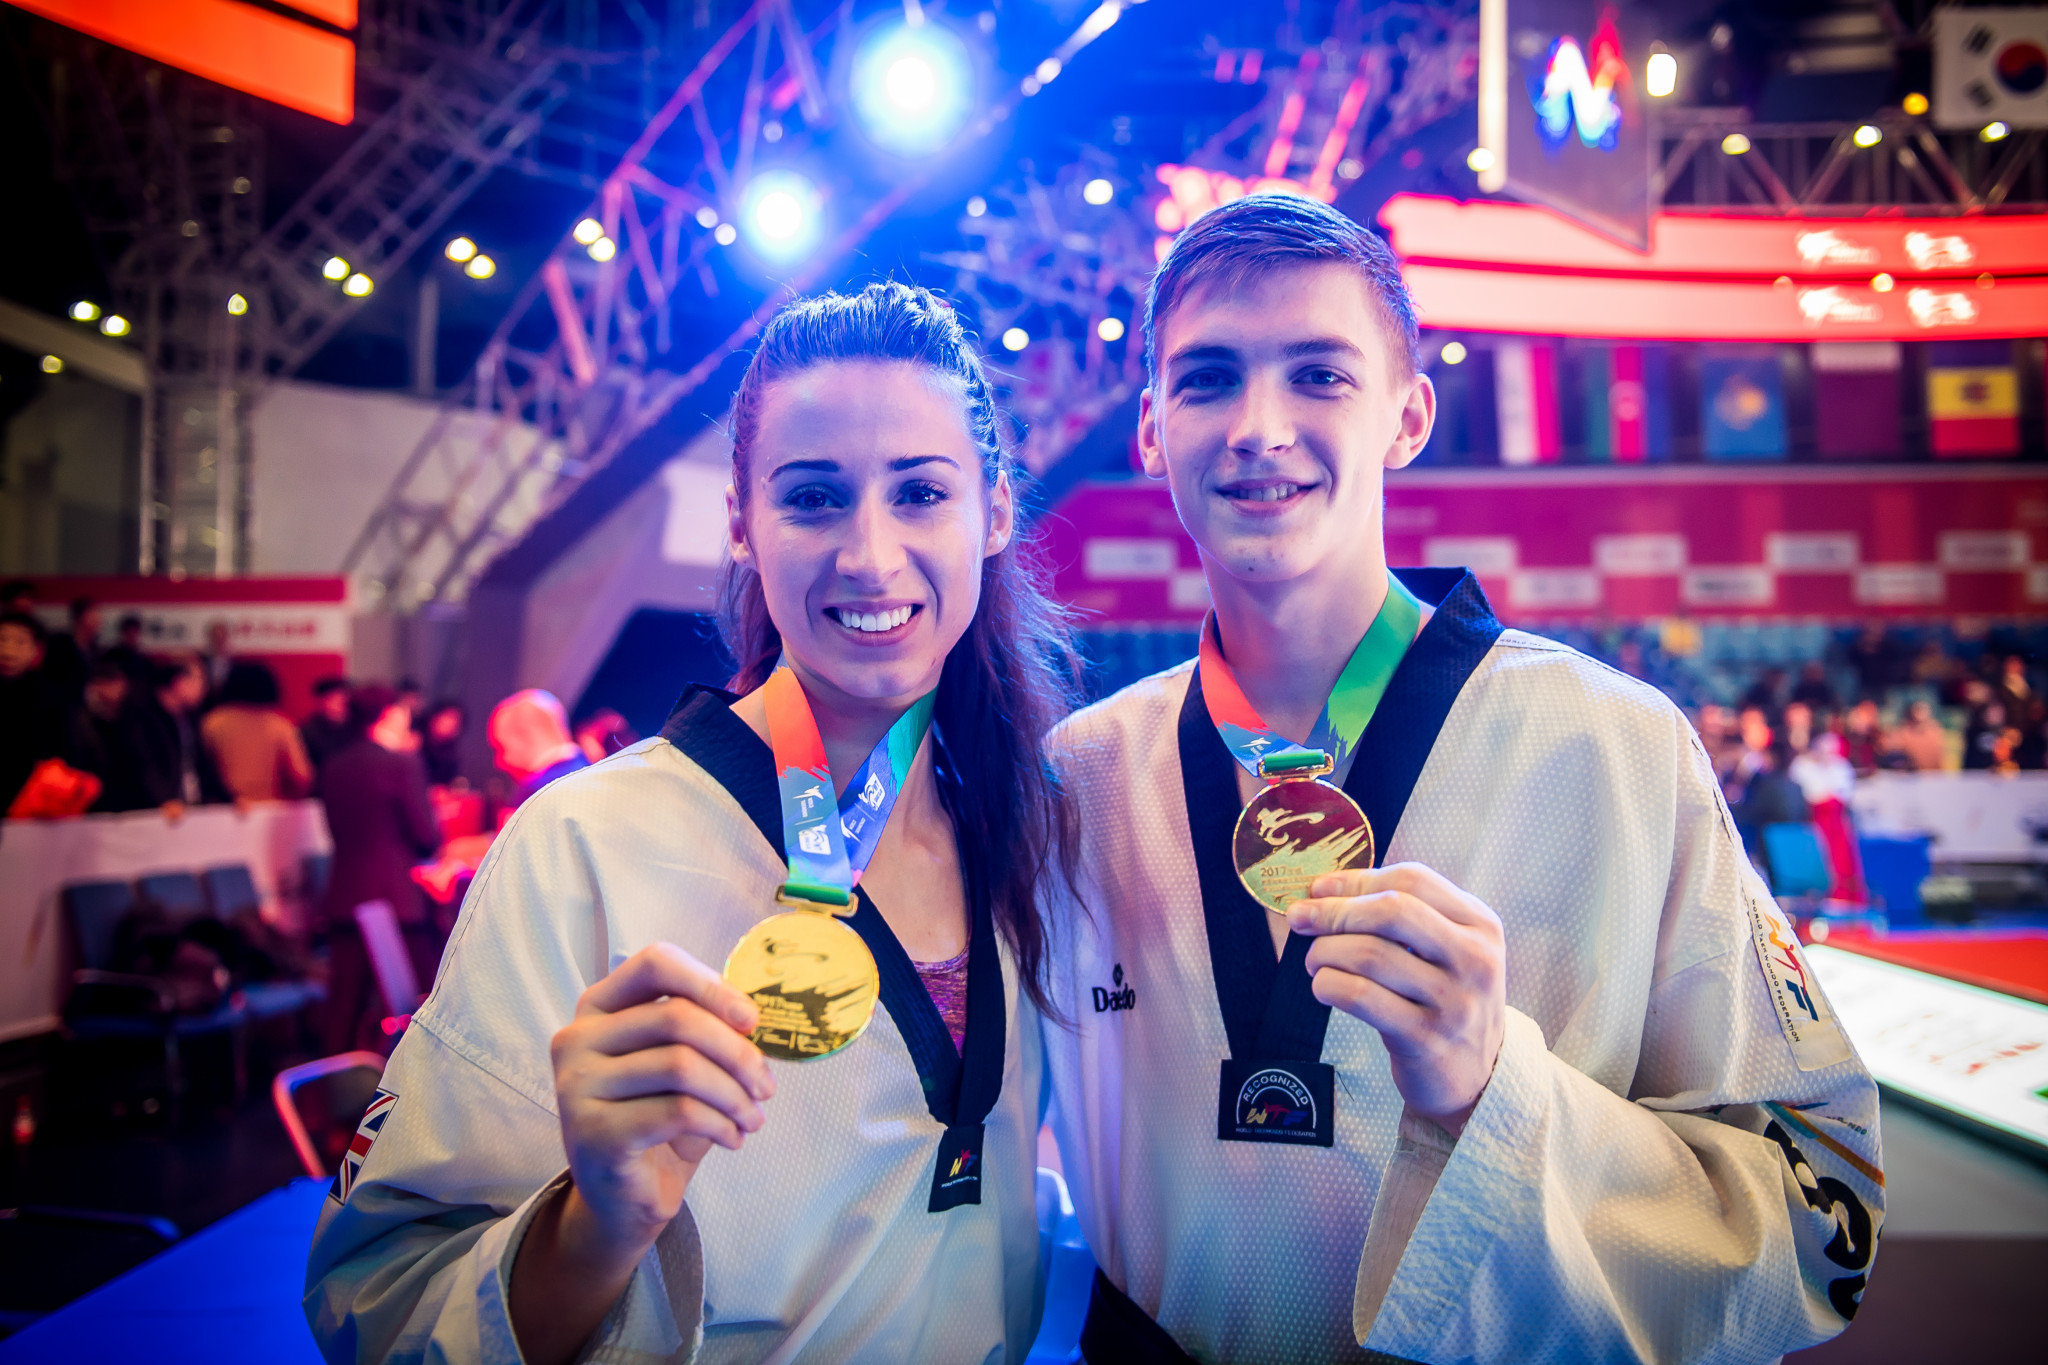 Great Britain's Bianca Walkden and Russia's Maksim Khramtcov won the respective women's over 67 kilograms and men's under 80kg gold medals at the inaugural event of the World Taekwondo Grand Slam Champions Series in Chinese city Wuxi ©World Taekwondo